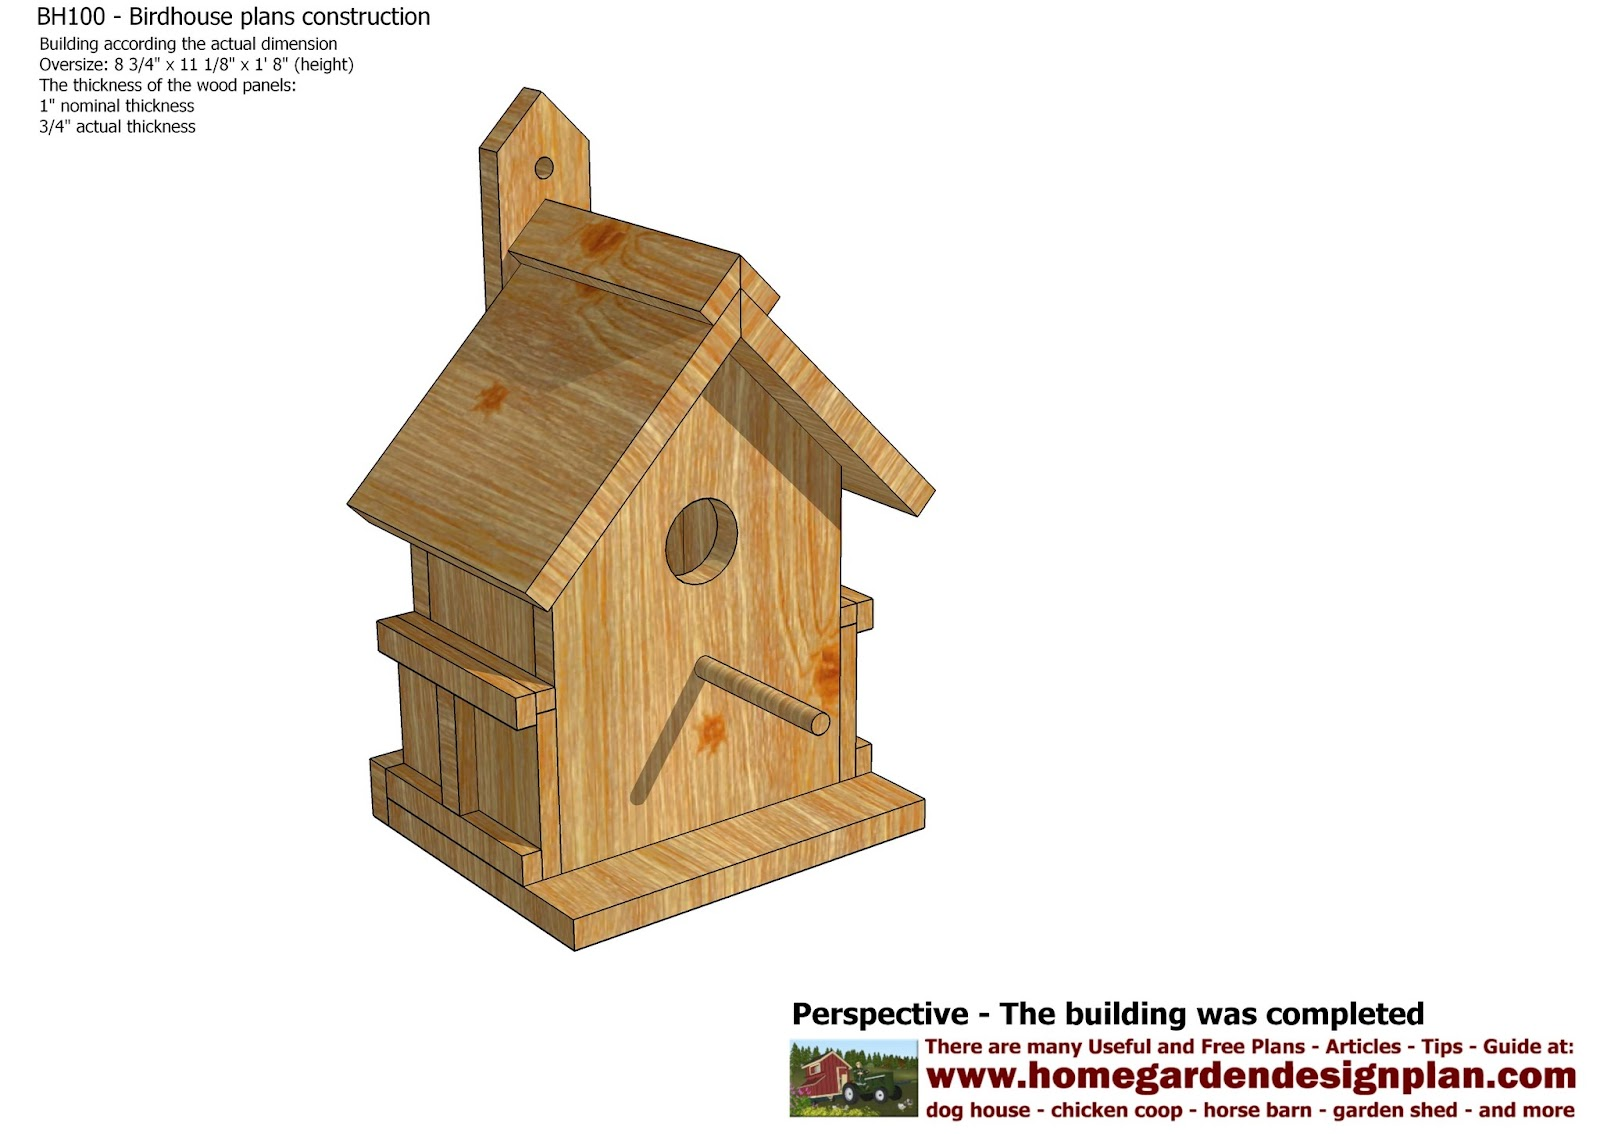 ... Barn Bird House Plans further Free Bird Feeder Plans. on wood